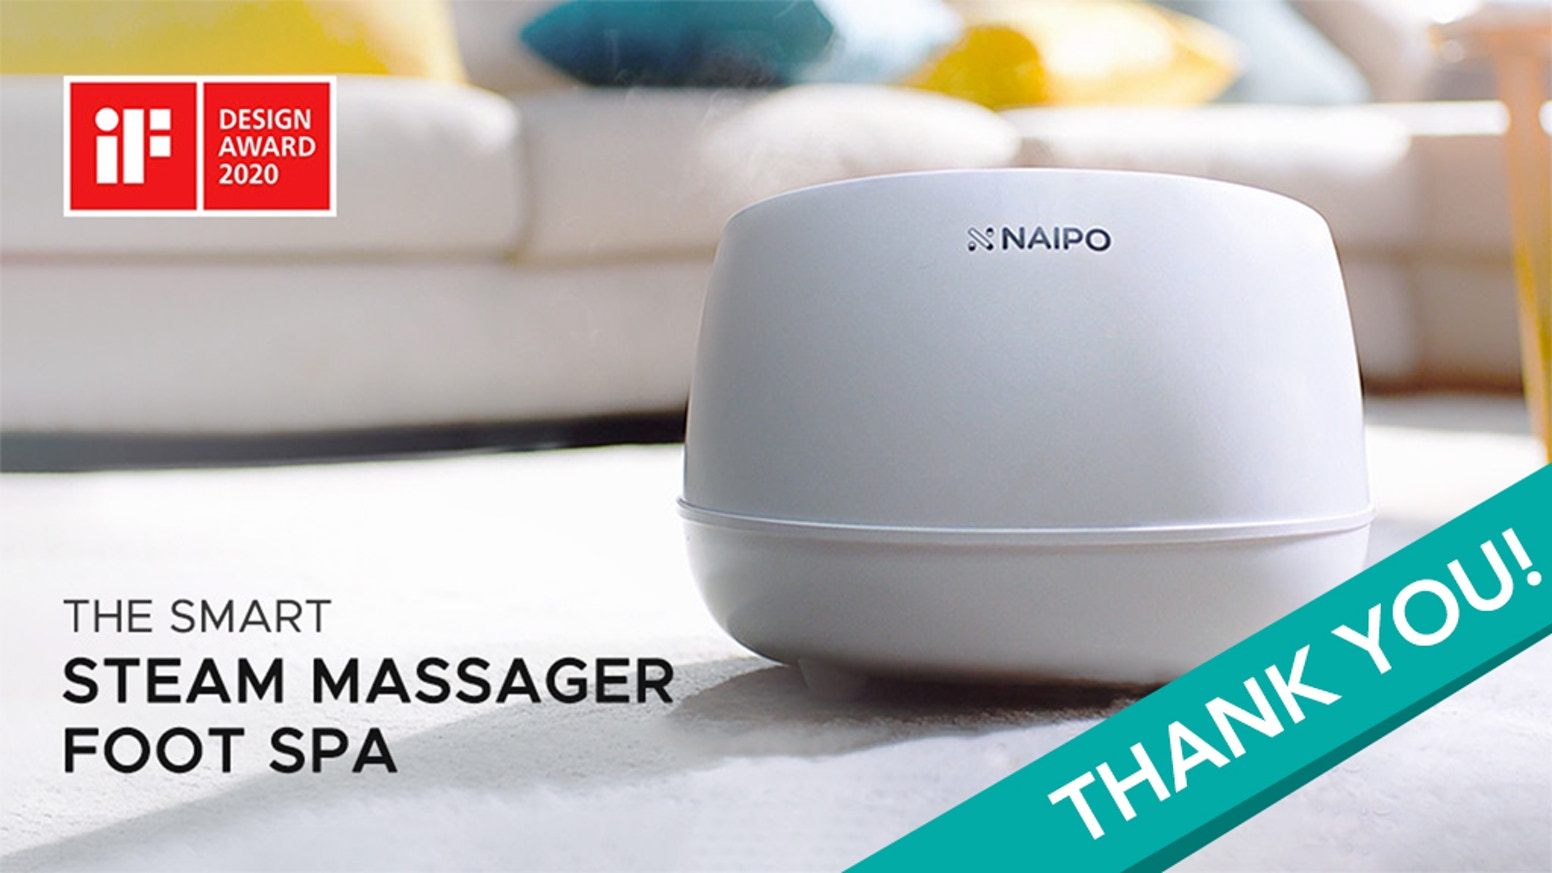 With less than a cup of water and one touch, you can enjoy a relaxing foot spa experience in the comfort of your home.